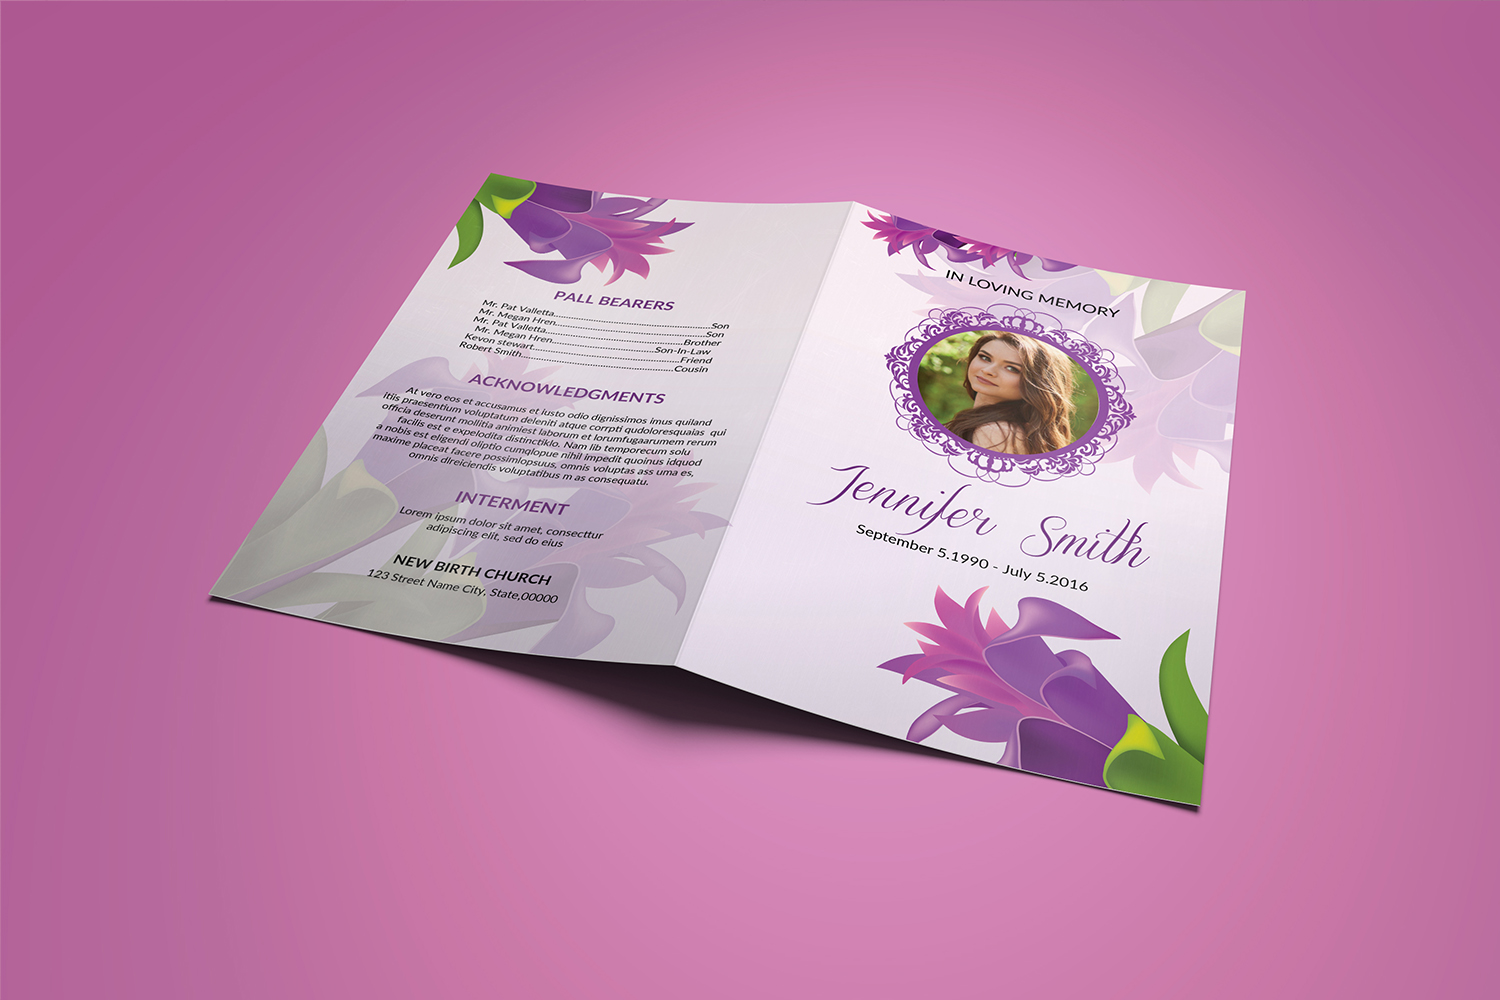 Floral Funeral Program Template example image 2